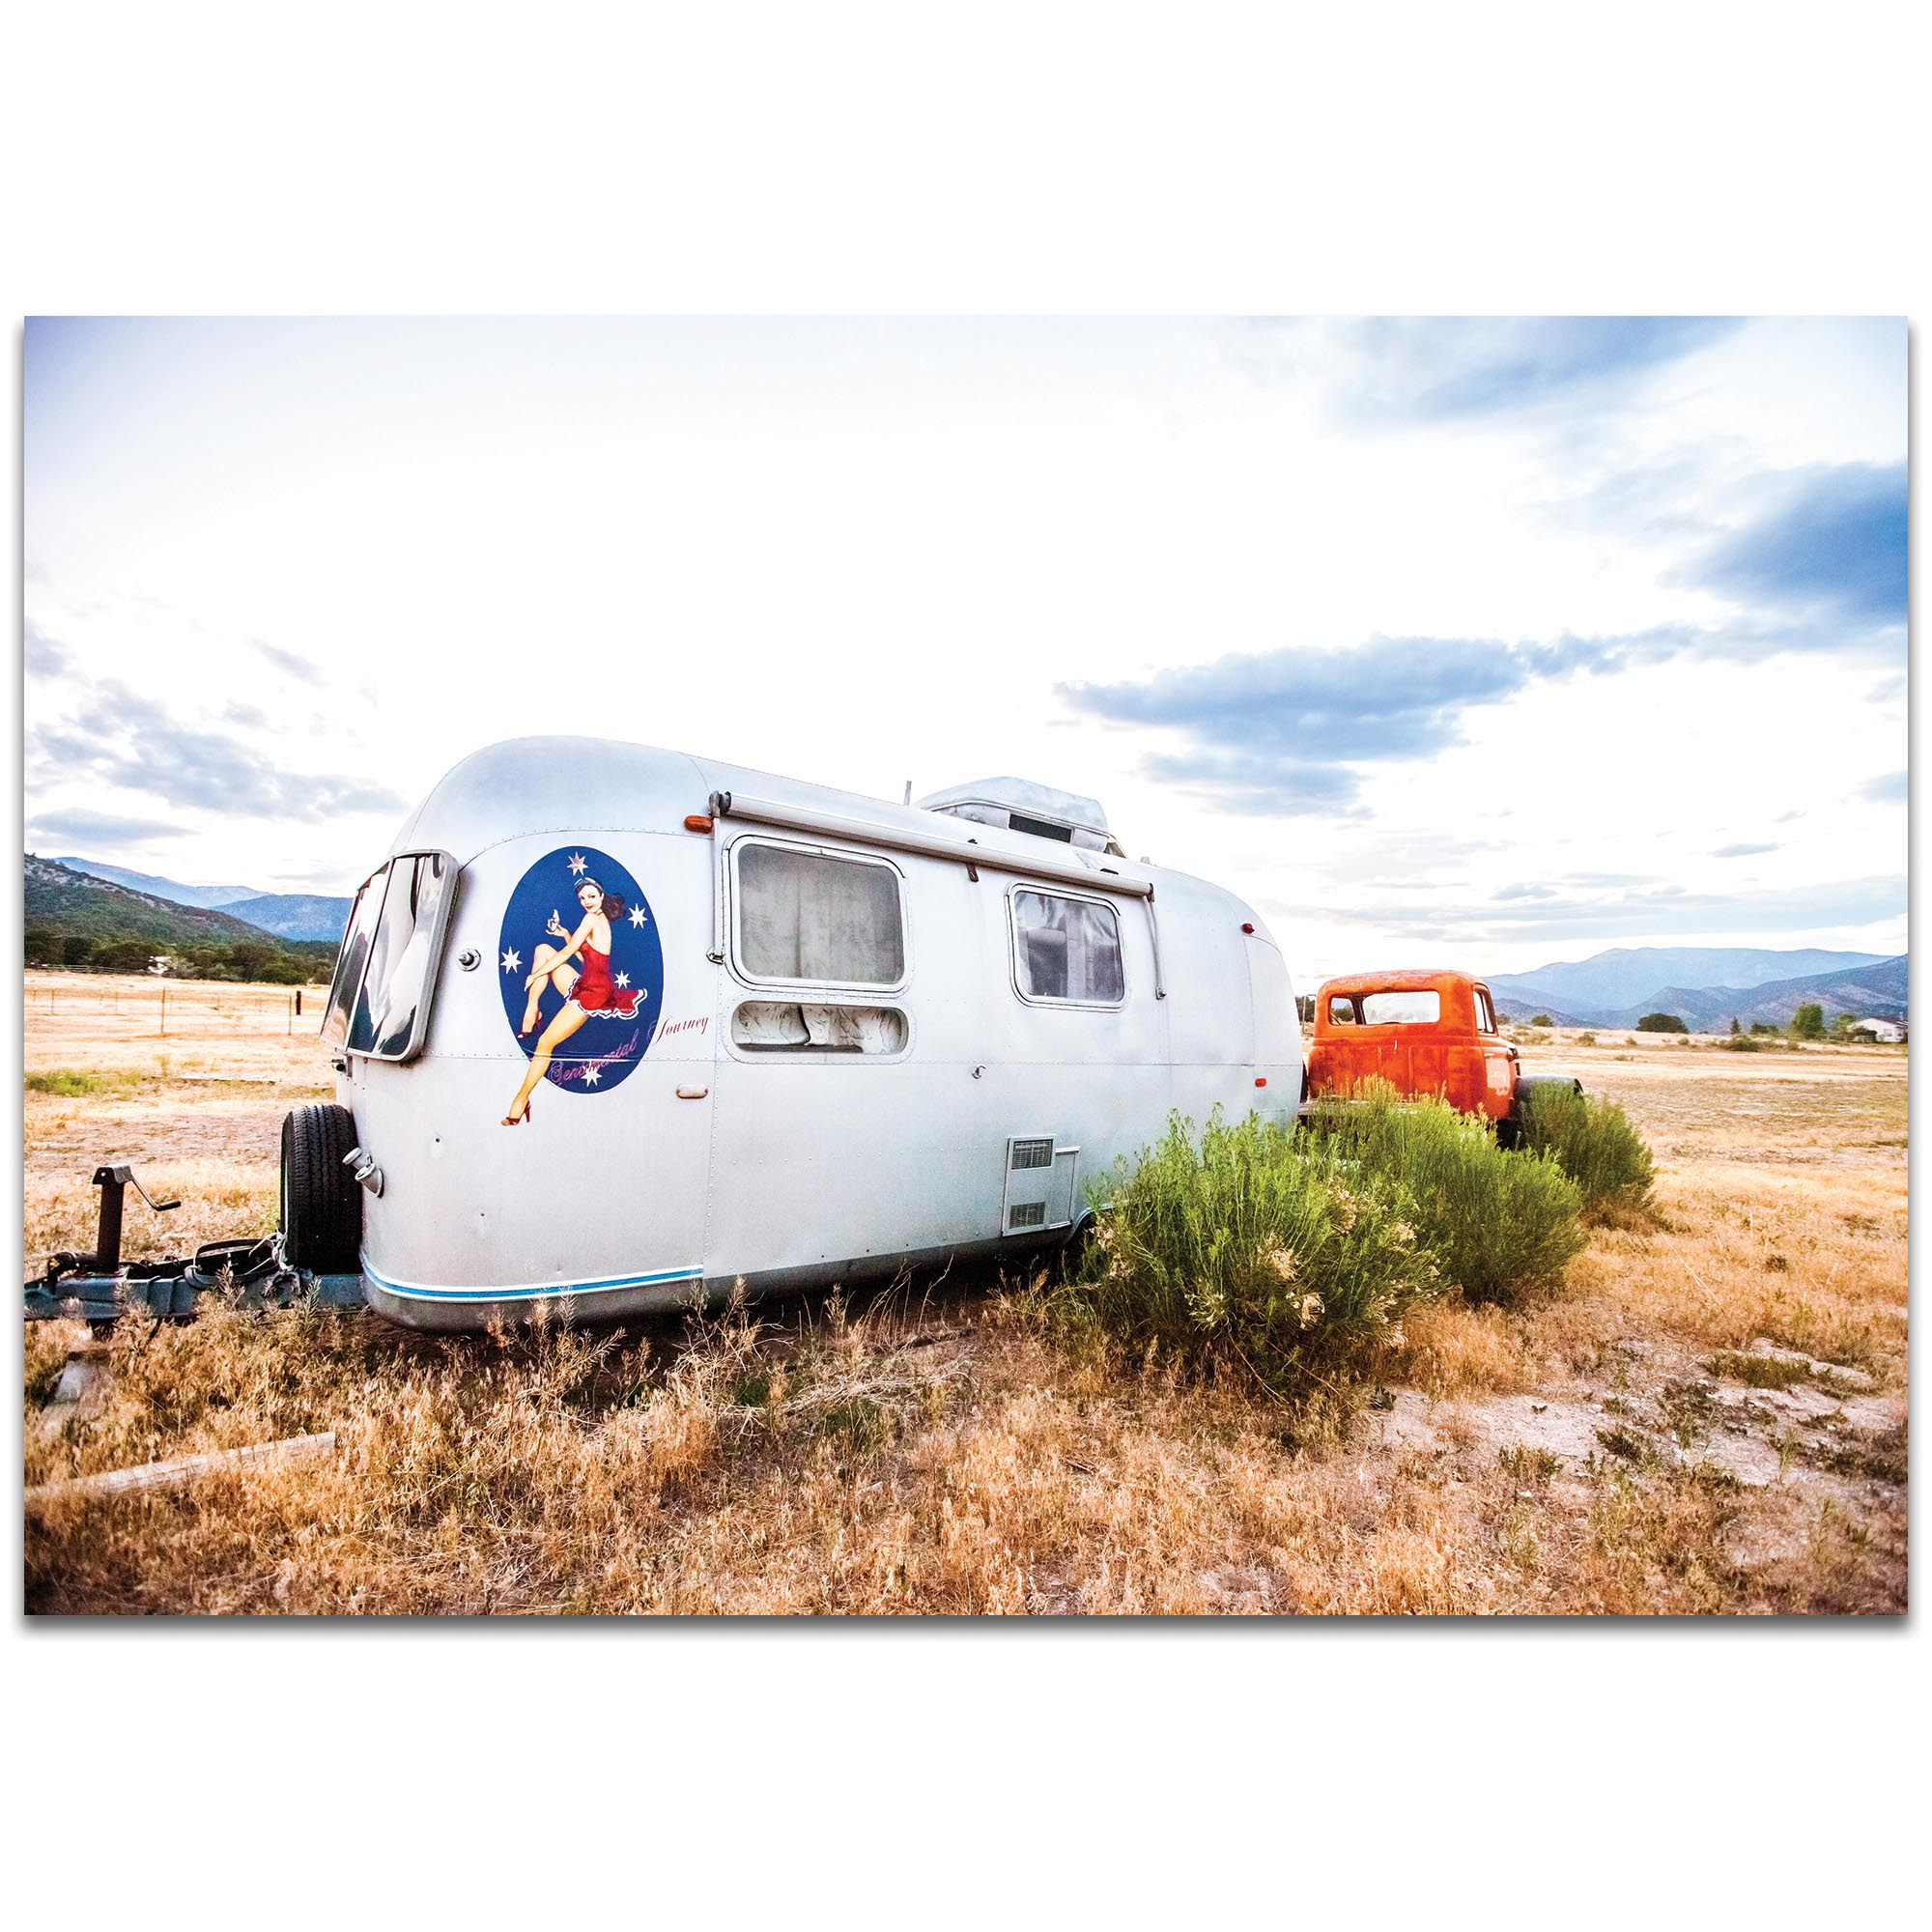 Americana Wall Art 'Airstream Lady' - Classic Cars Decor on Metal or Plexiglass